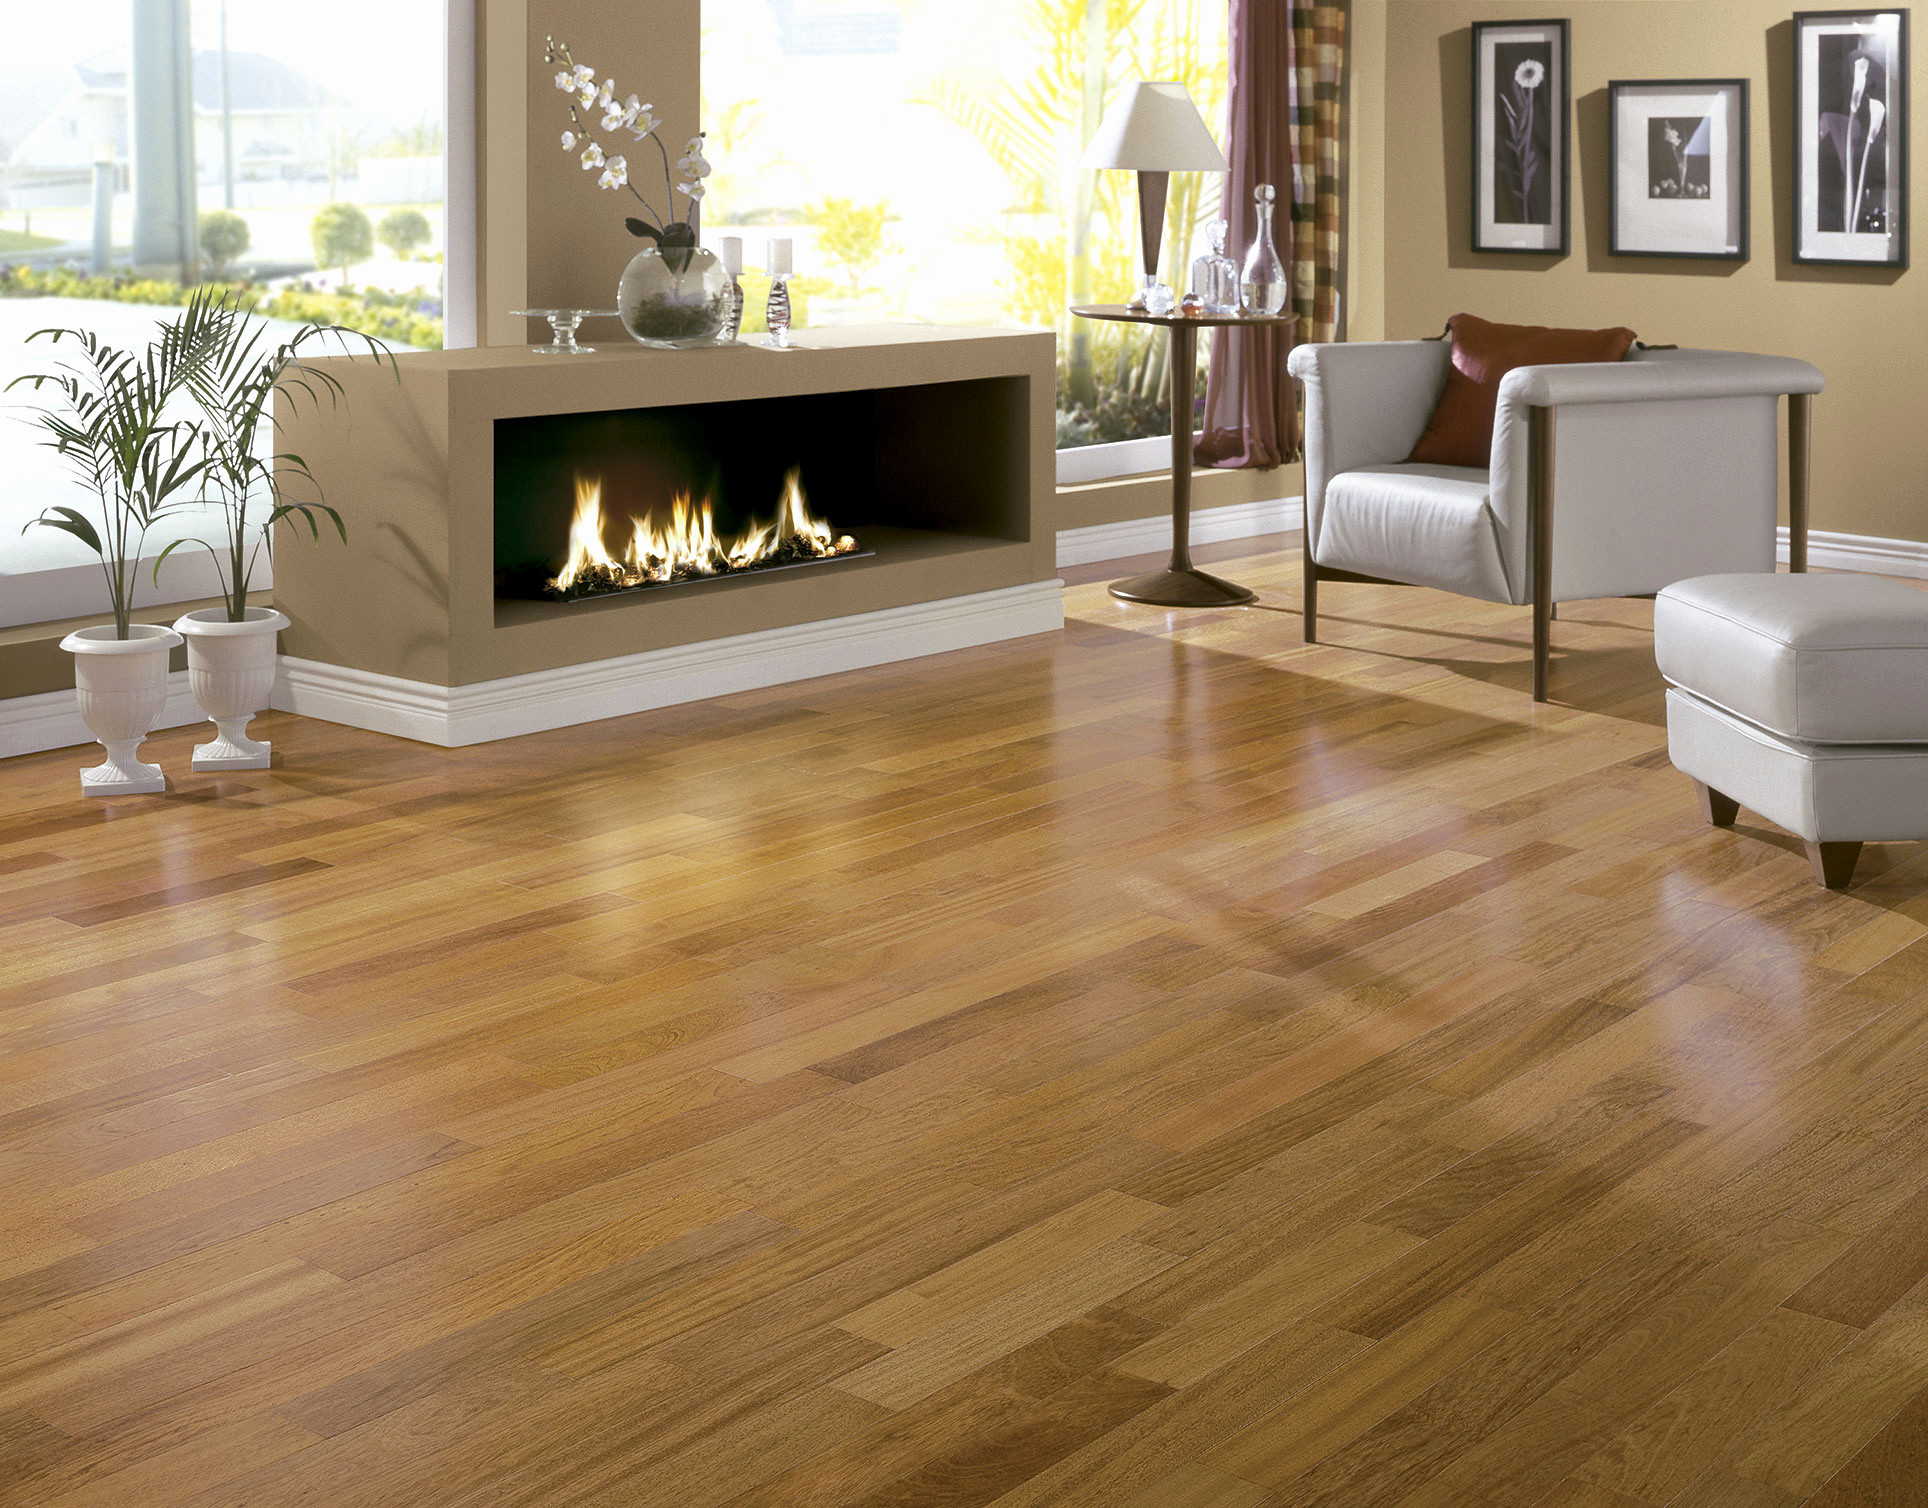 Clearance Engineered Hardwood Flooring Of 28 Awesome Clearance Hardwood Flooring Wlcu within Clearance Hardwood Flooring Elegant Lovely Discount Hardwood Flooring 14 Clearance Hardwood Flooring Inspirational